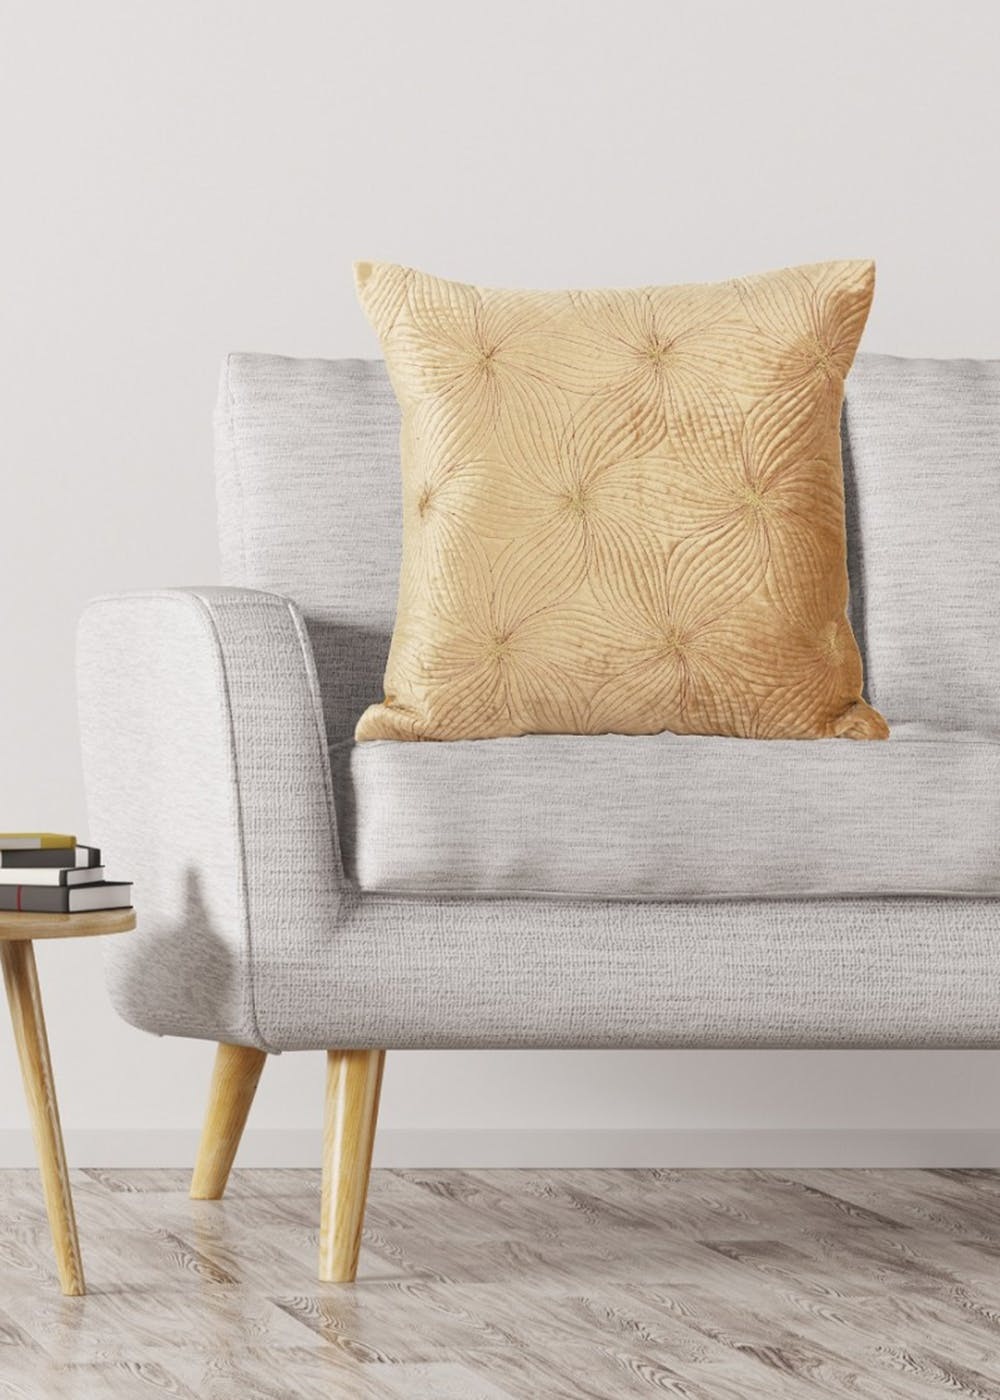 Velvet Opulence Cushion Cover with Embroidery - Golden -18X18 Inch